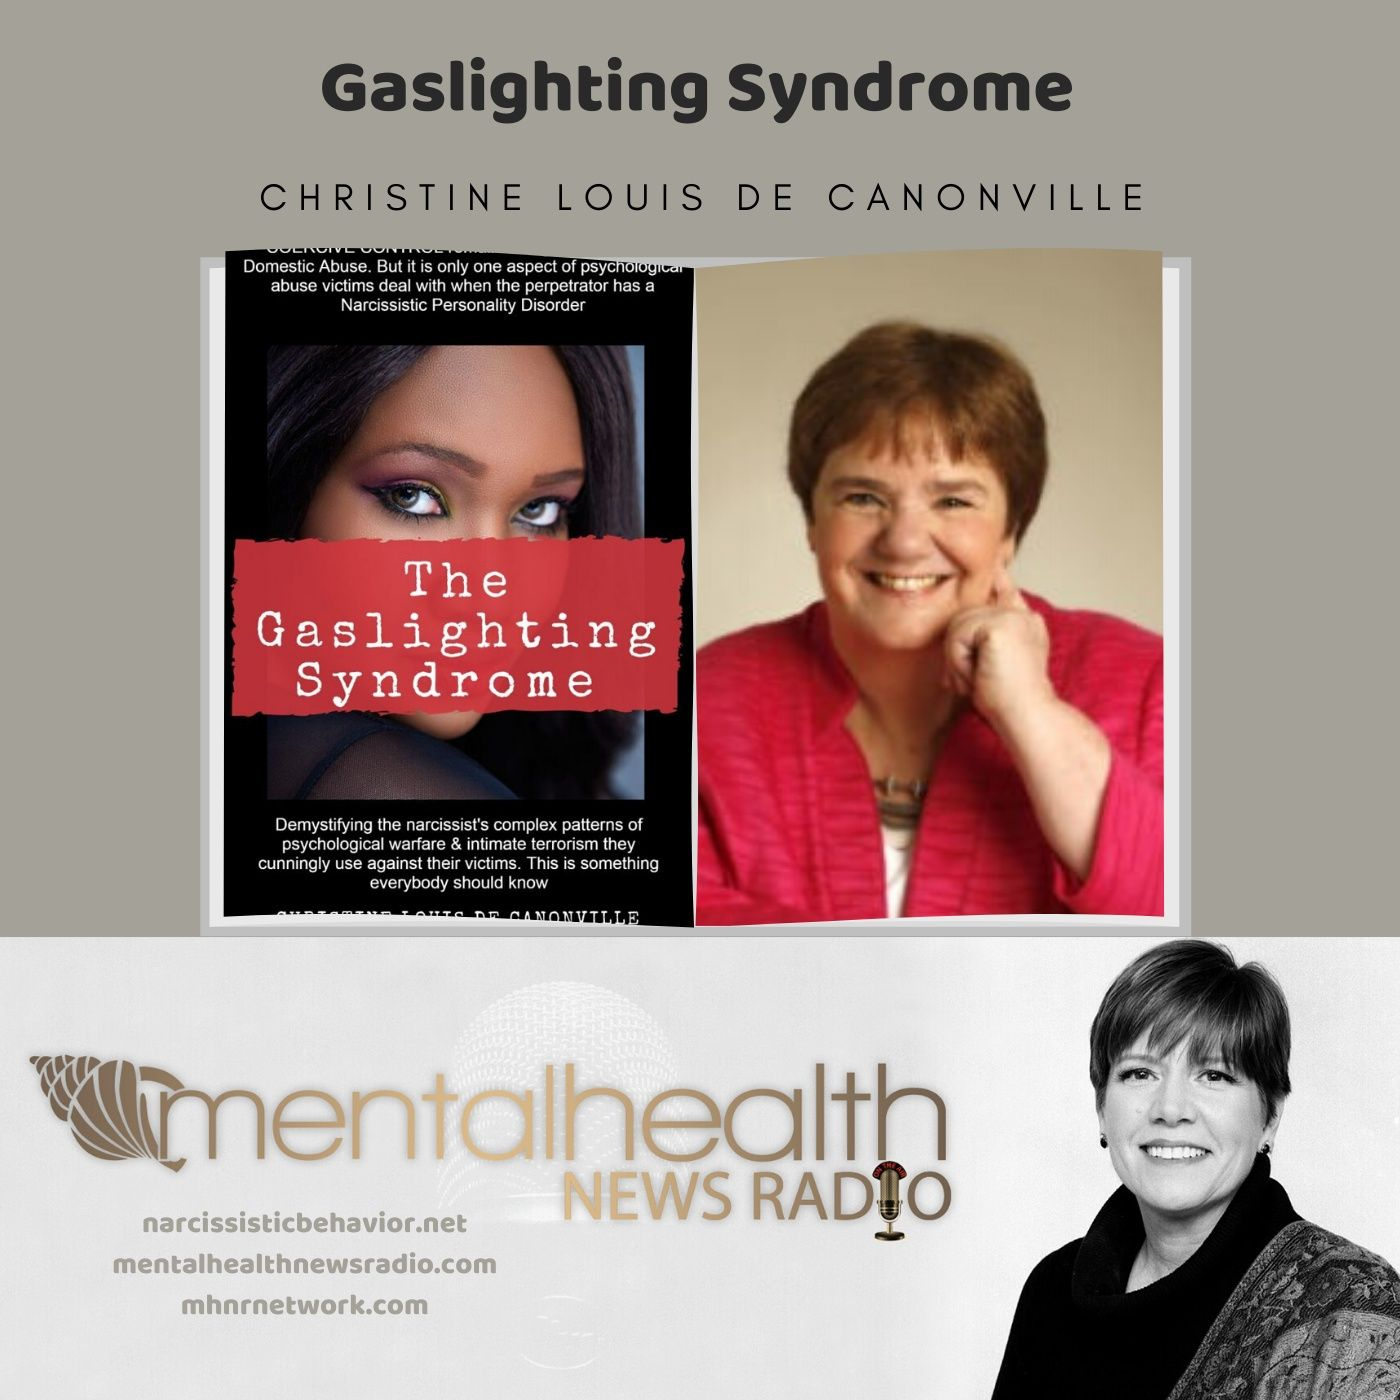 Mental Health News Radio - Gaslighting Syndrome with Christine Louis de Canonville